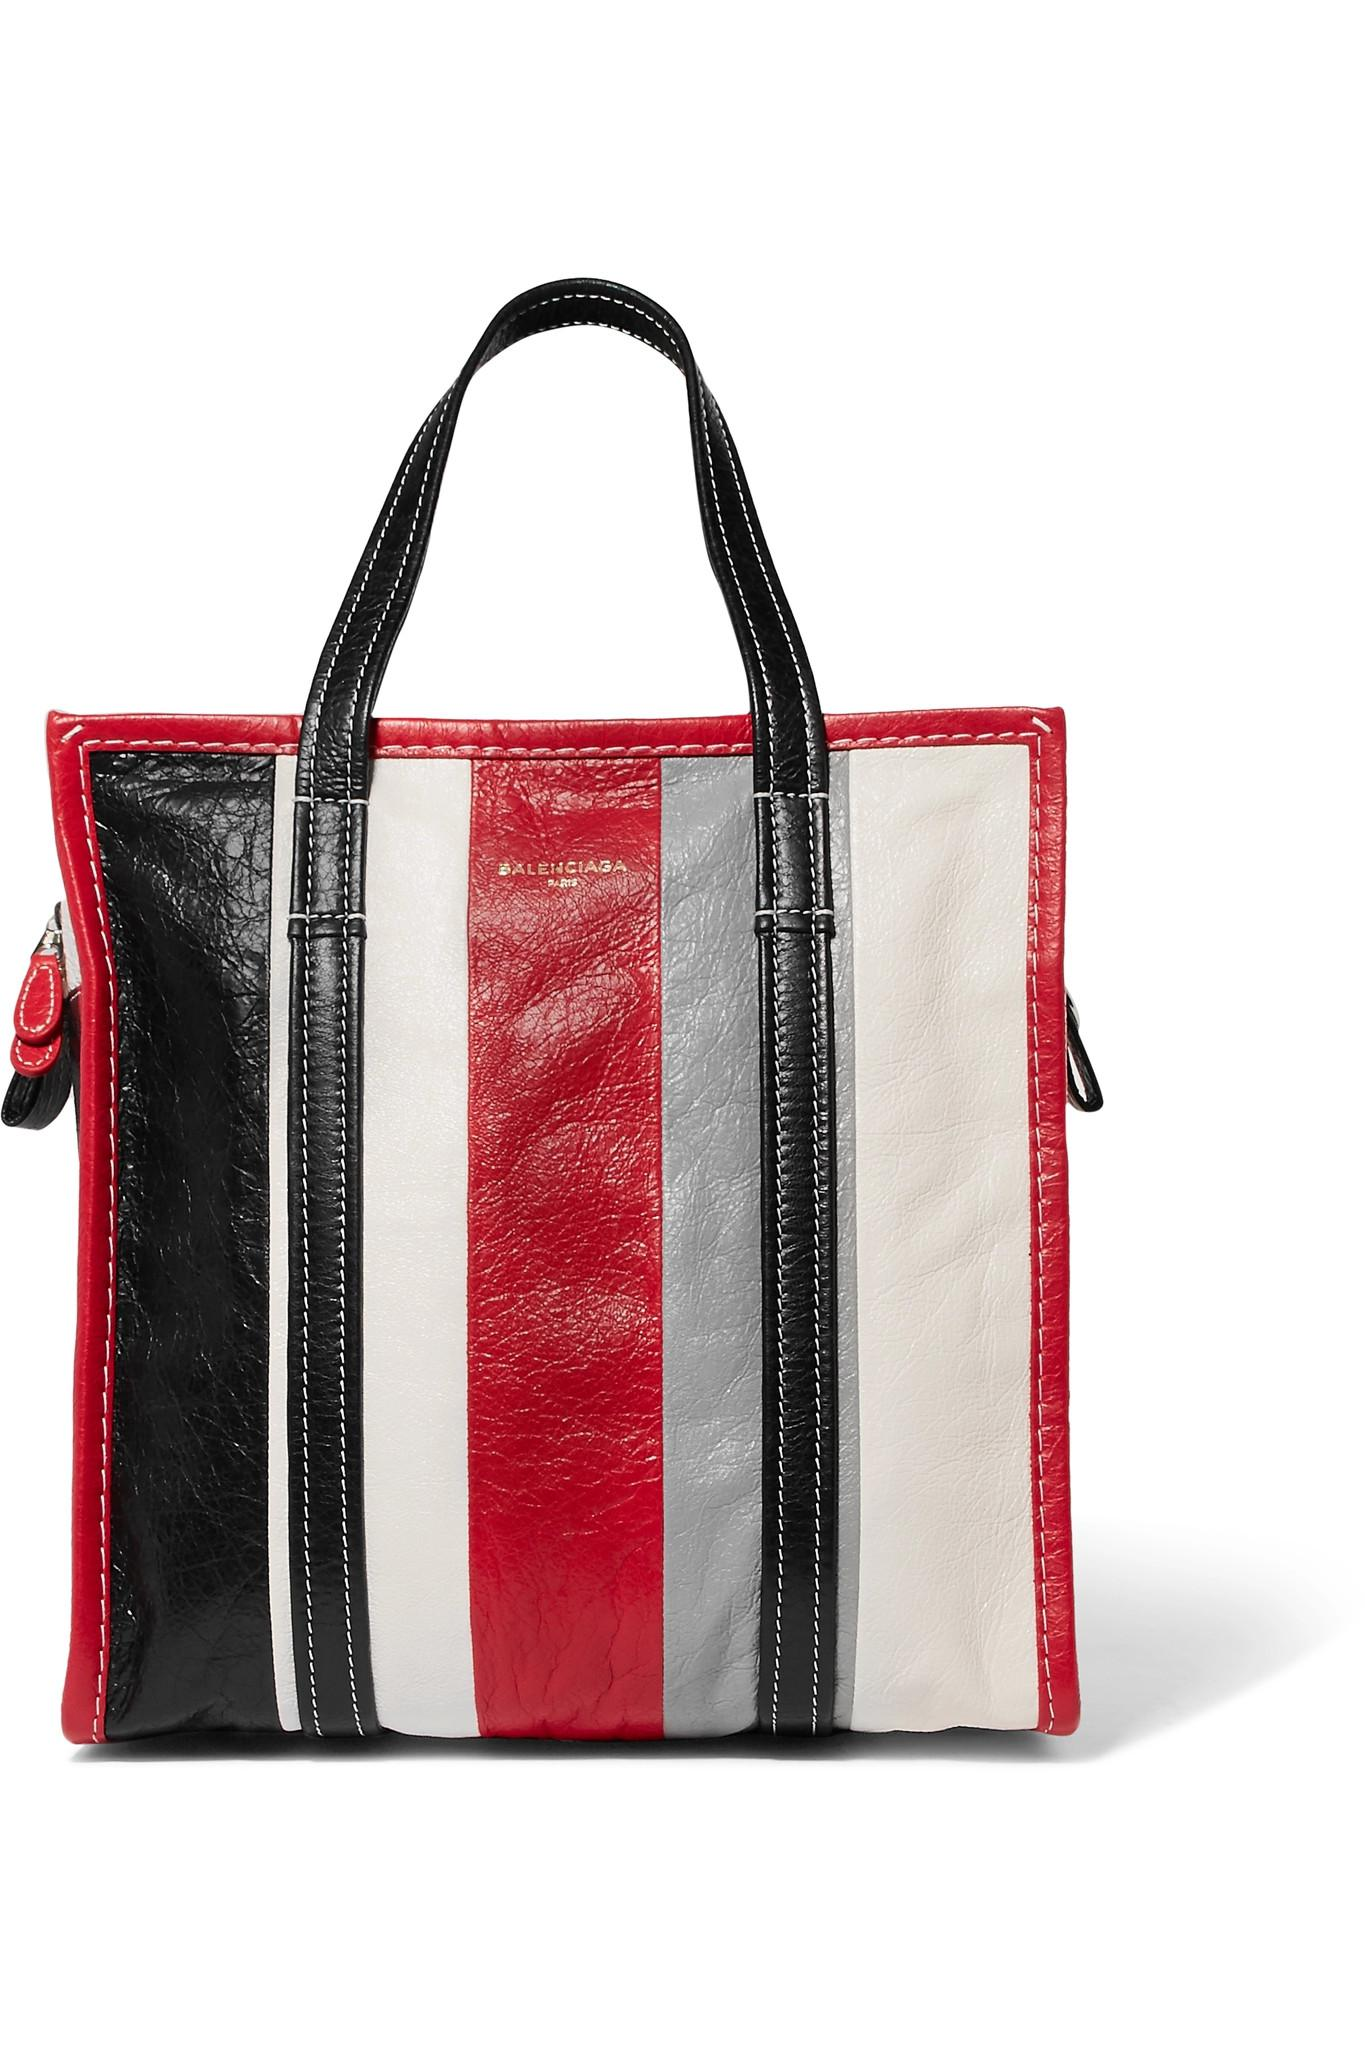 f98aab32ac0 Balenciaga Bazar Small Striped Textured-leather Tote Red One Size in ...